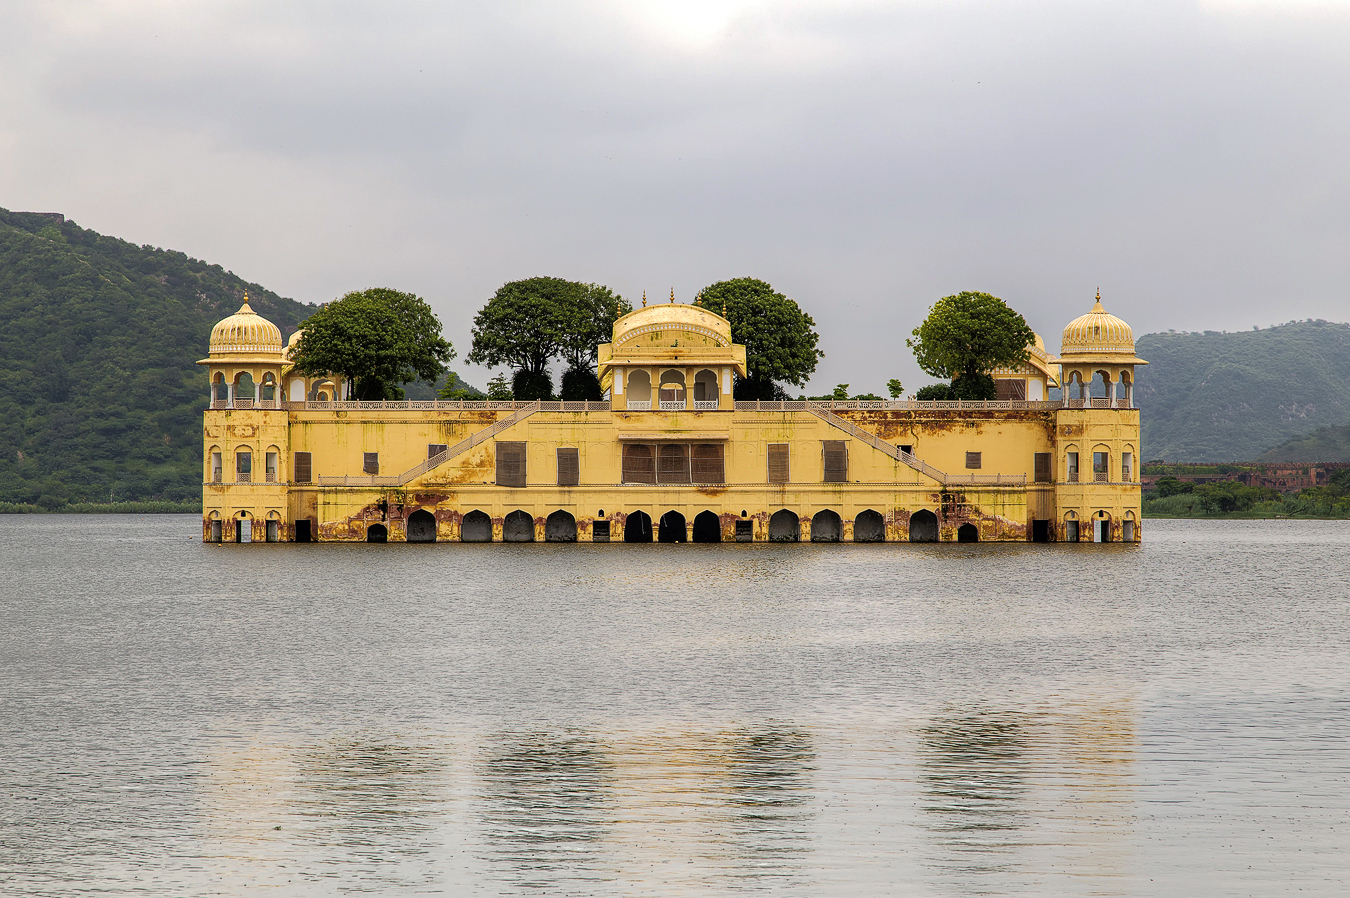 Top Palace To Visit In Jaipur-Jal Mahal